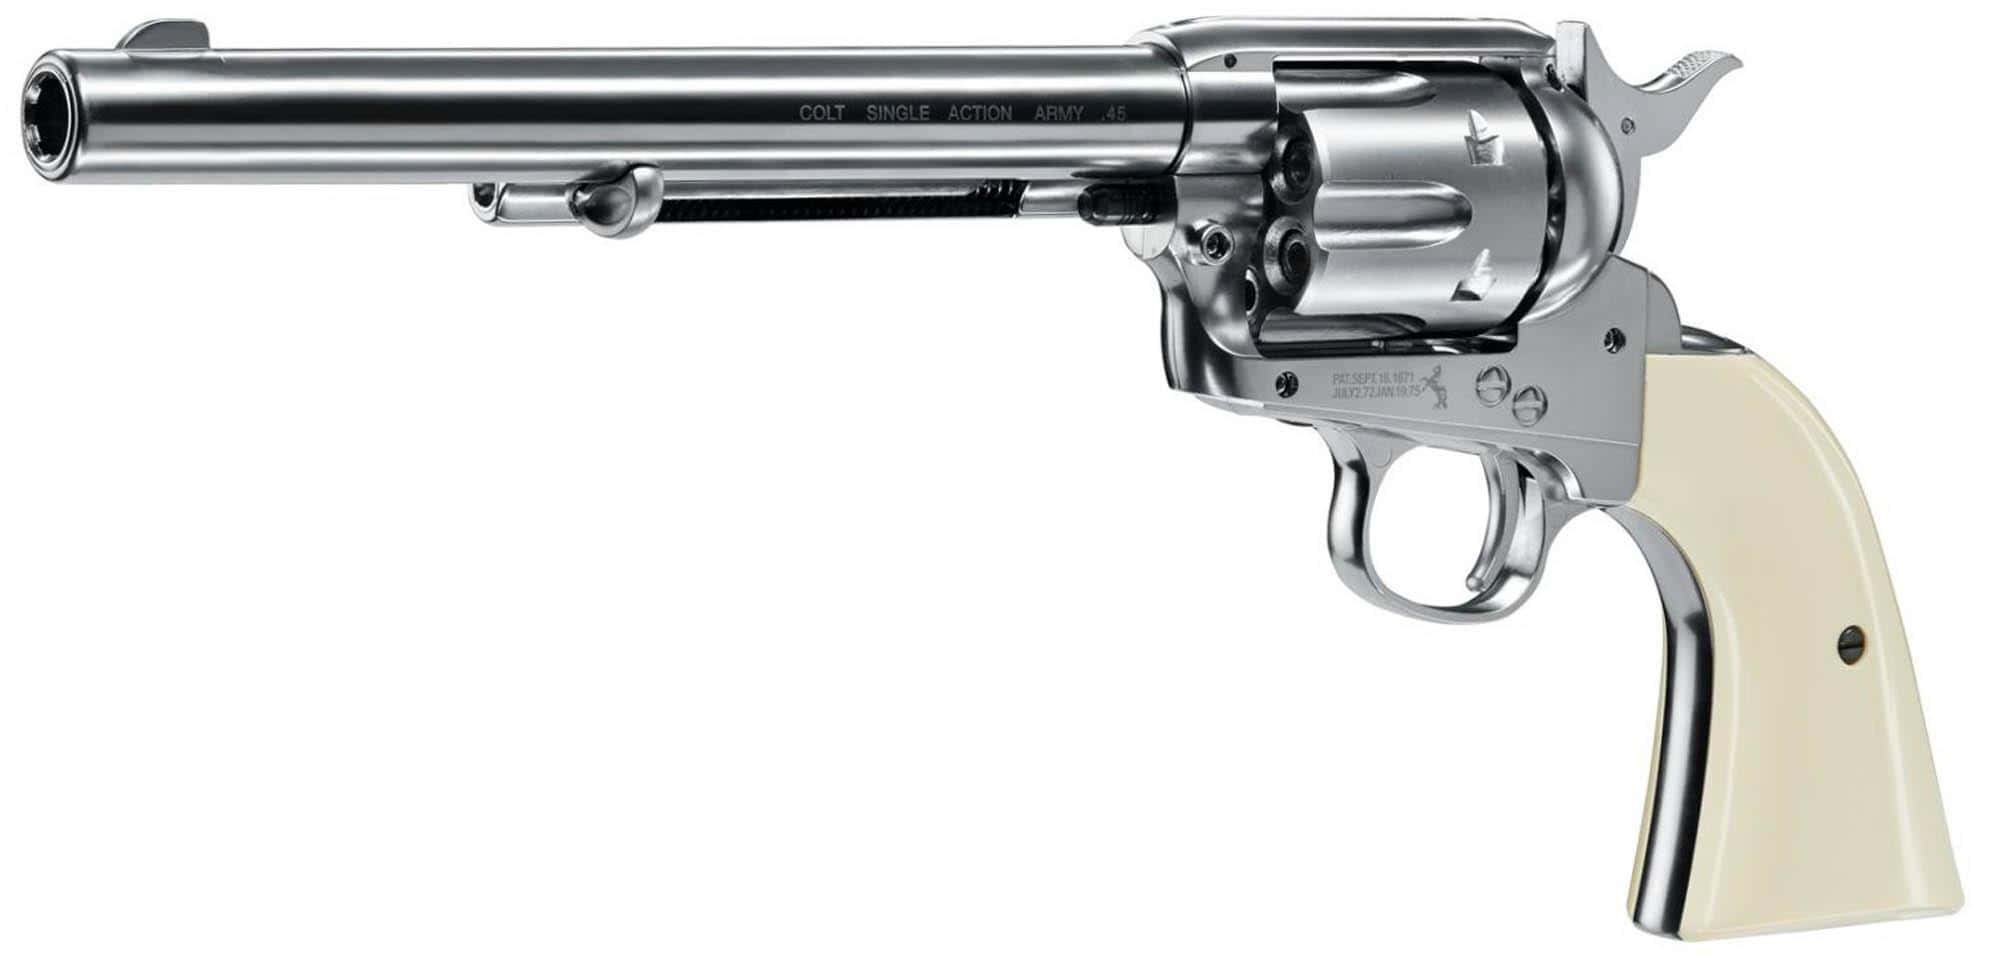 ACP202-Revolver plomb Colt single action .45 nickel - UMAREX - ACP207